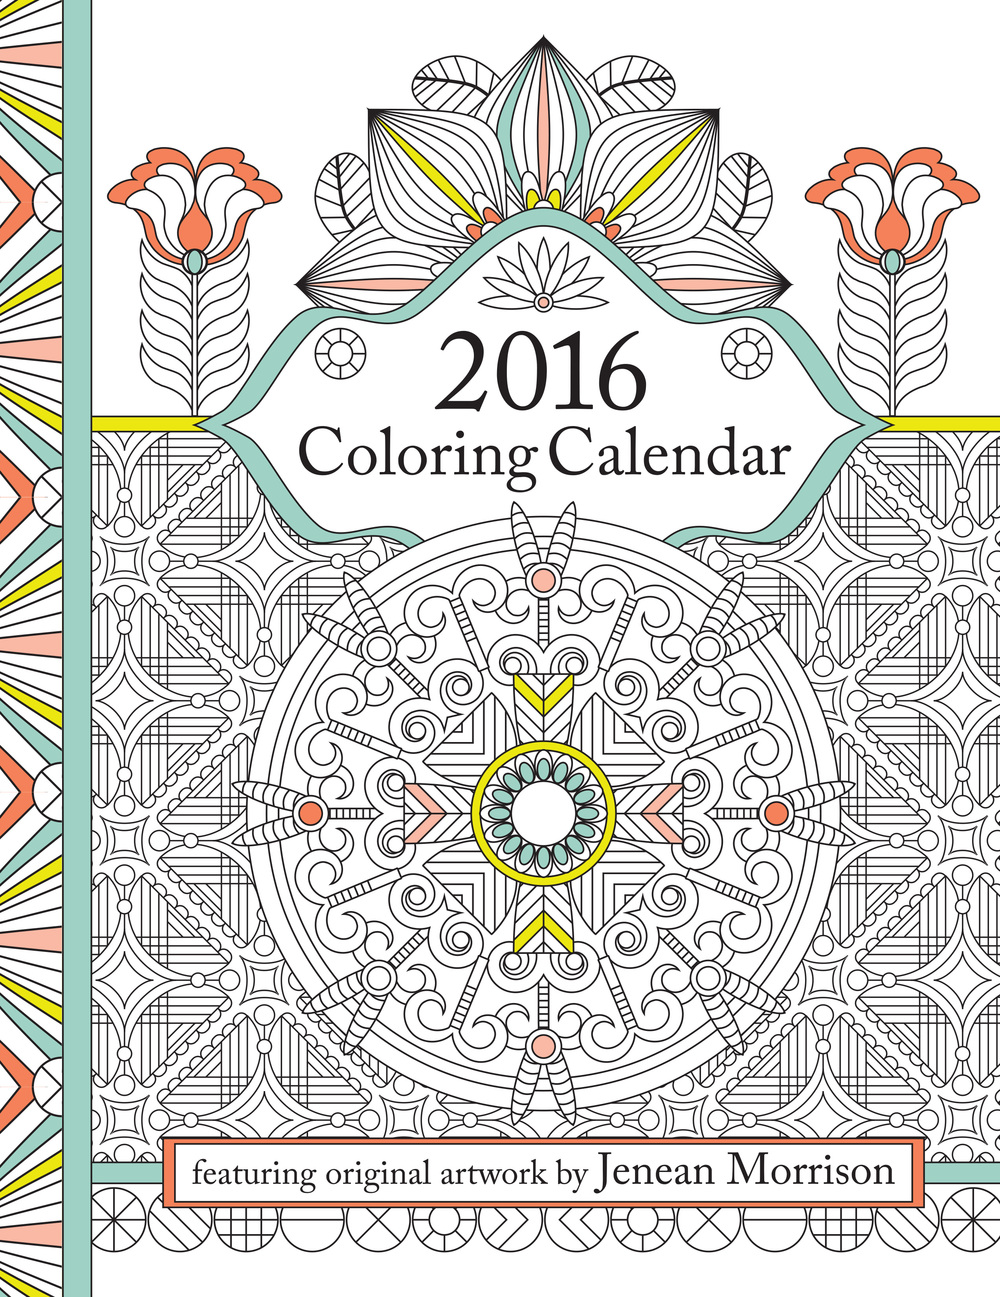 coloringcalendarcoverfront.jpg